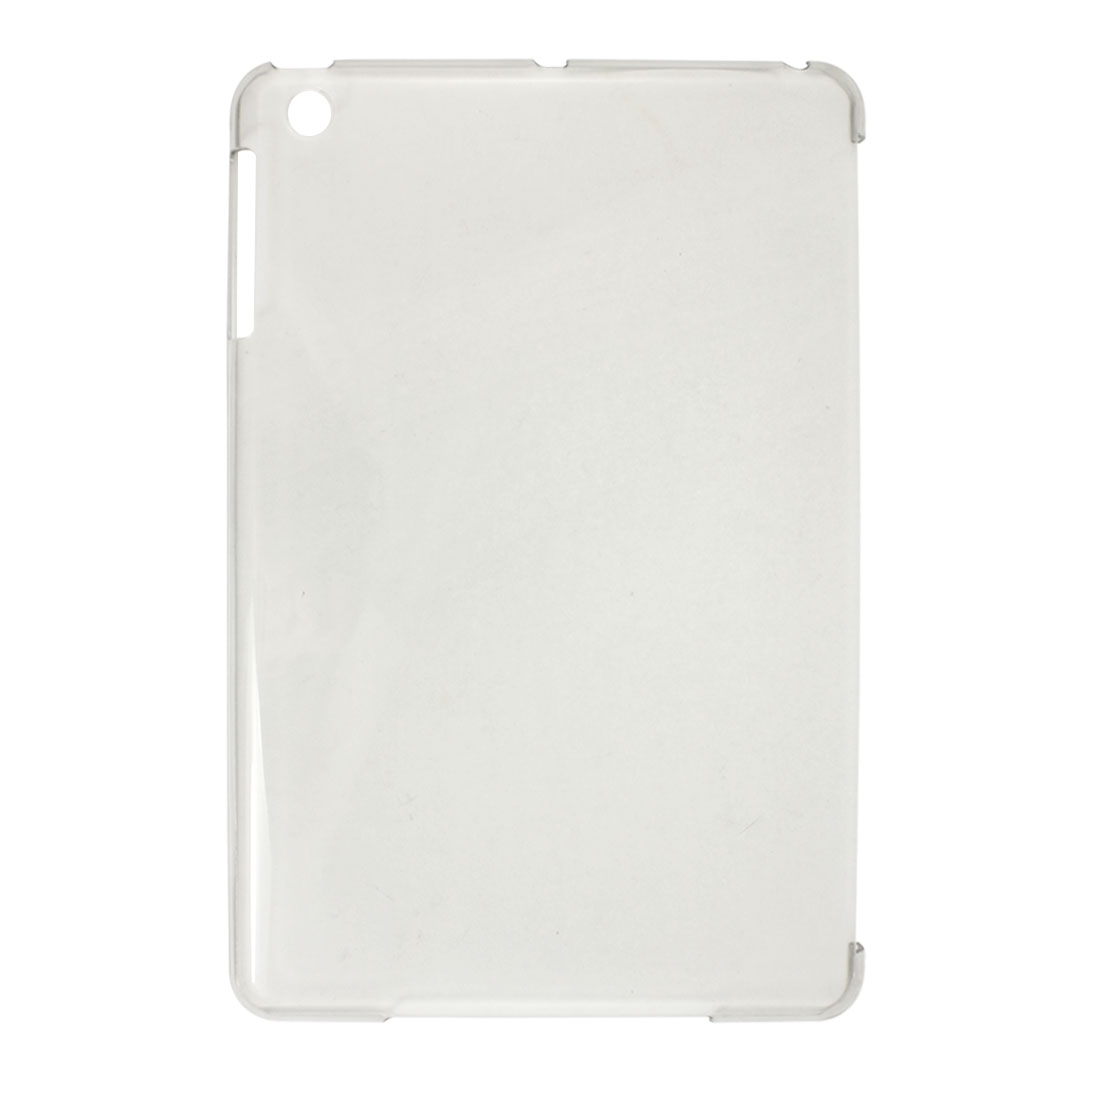 Unique Bargains Clear Gray Plastic Back Cover Shell Protector for Apple iPad